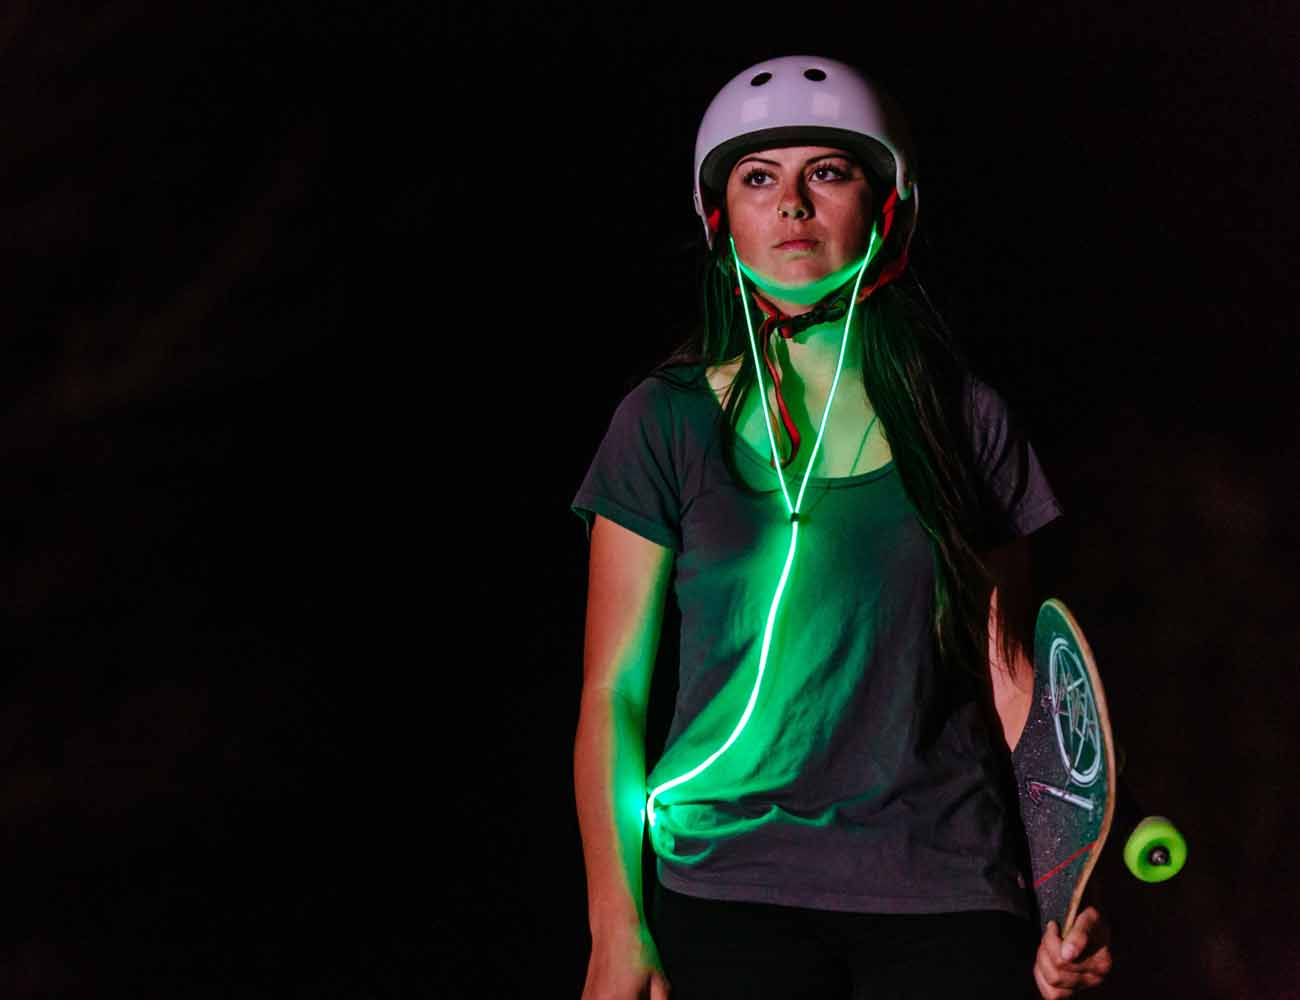 Glow – The First Smart Headphones with Laser Light